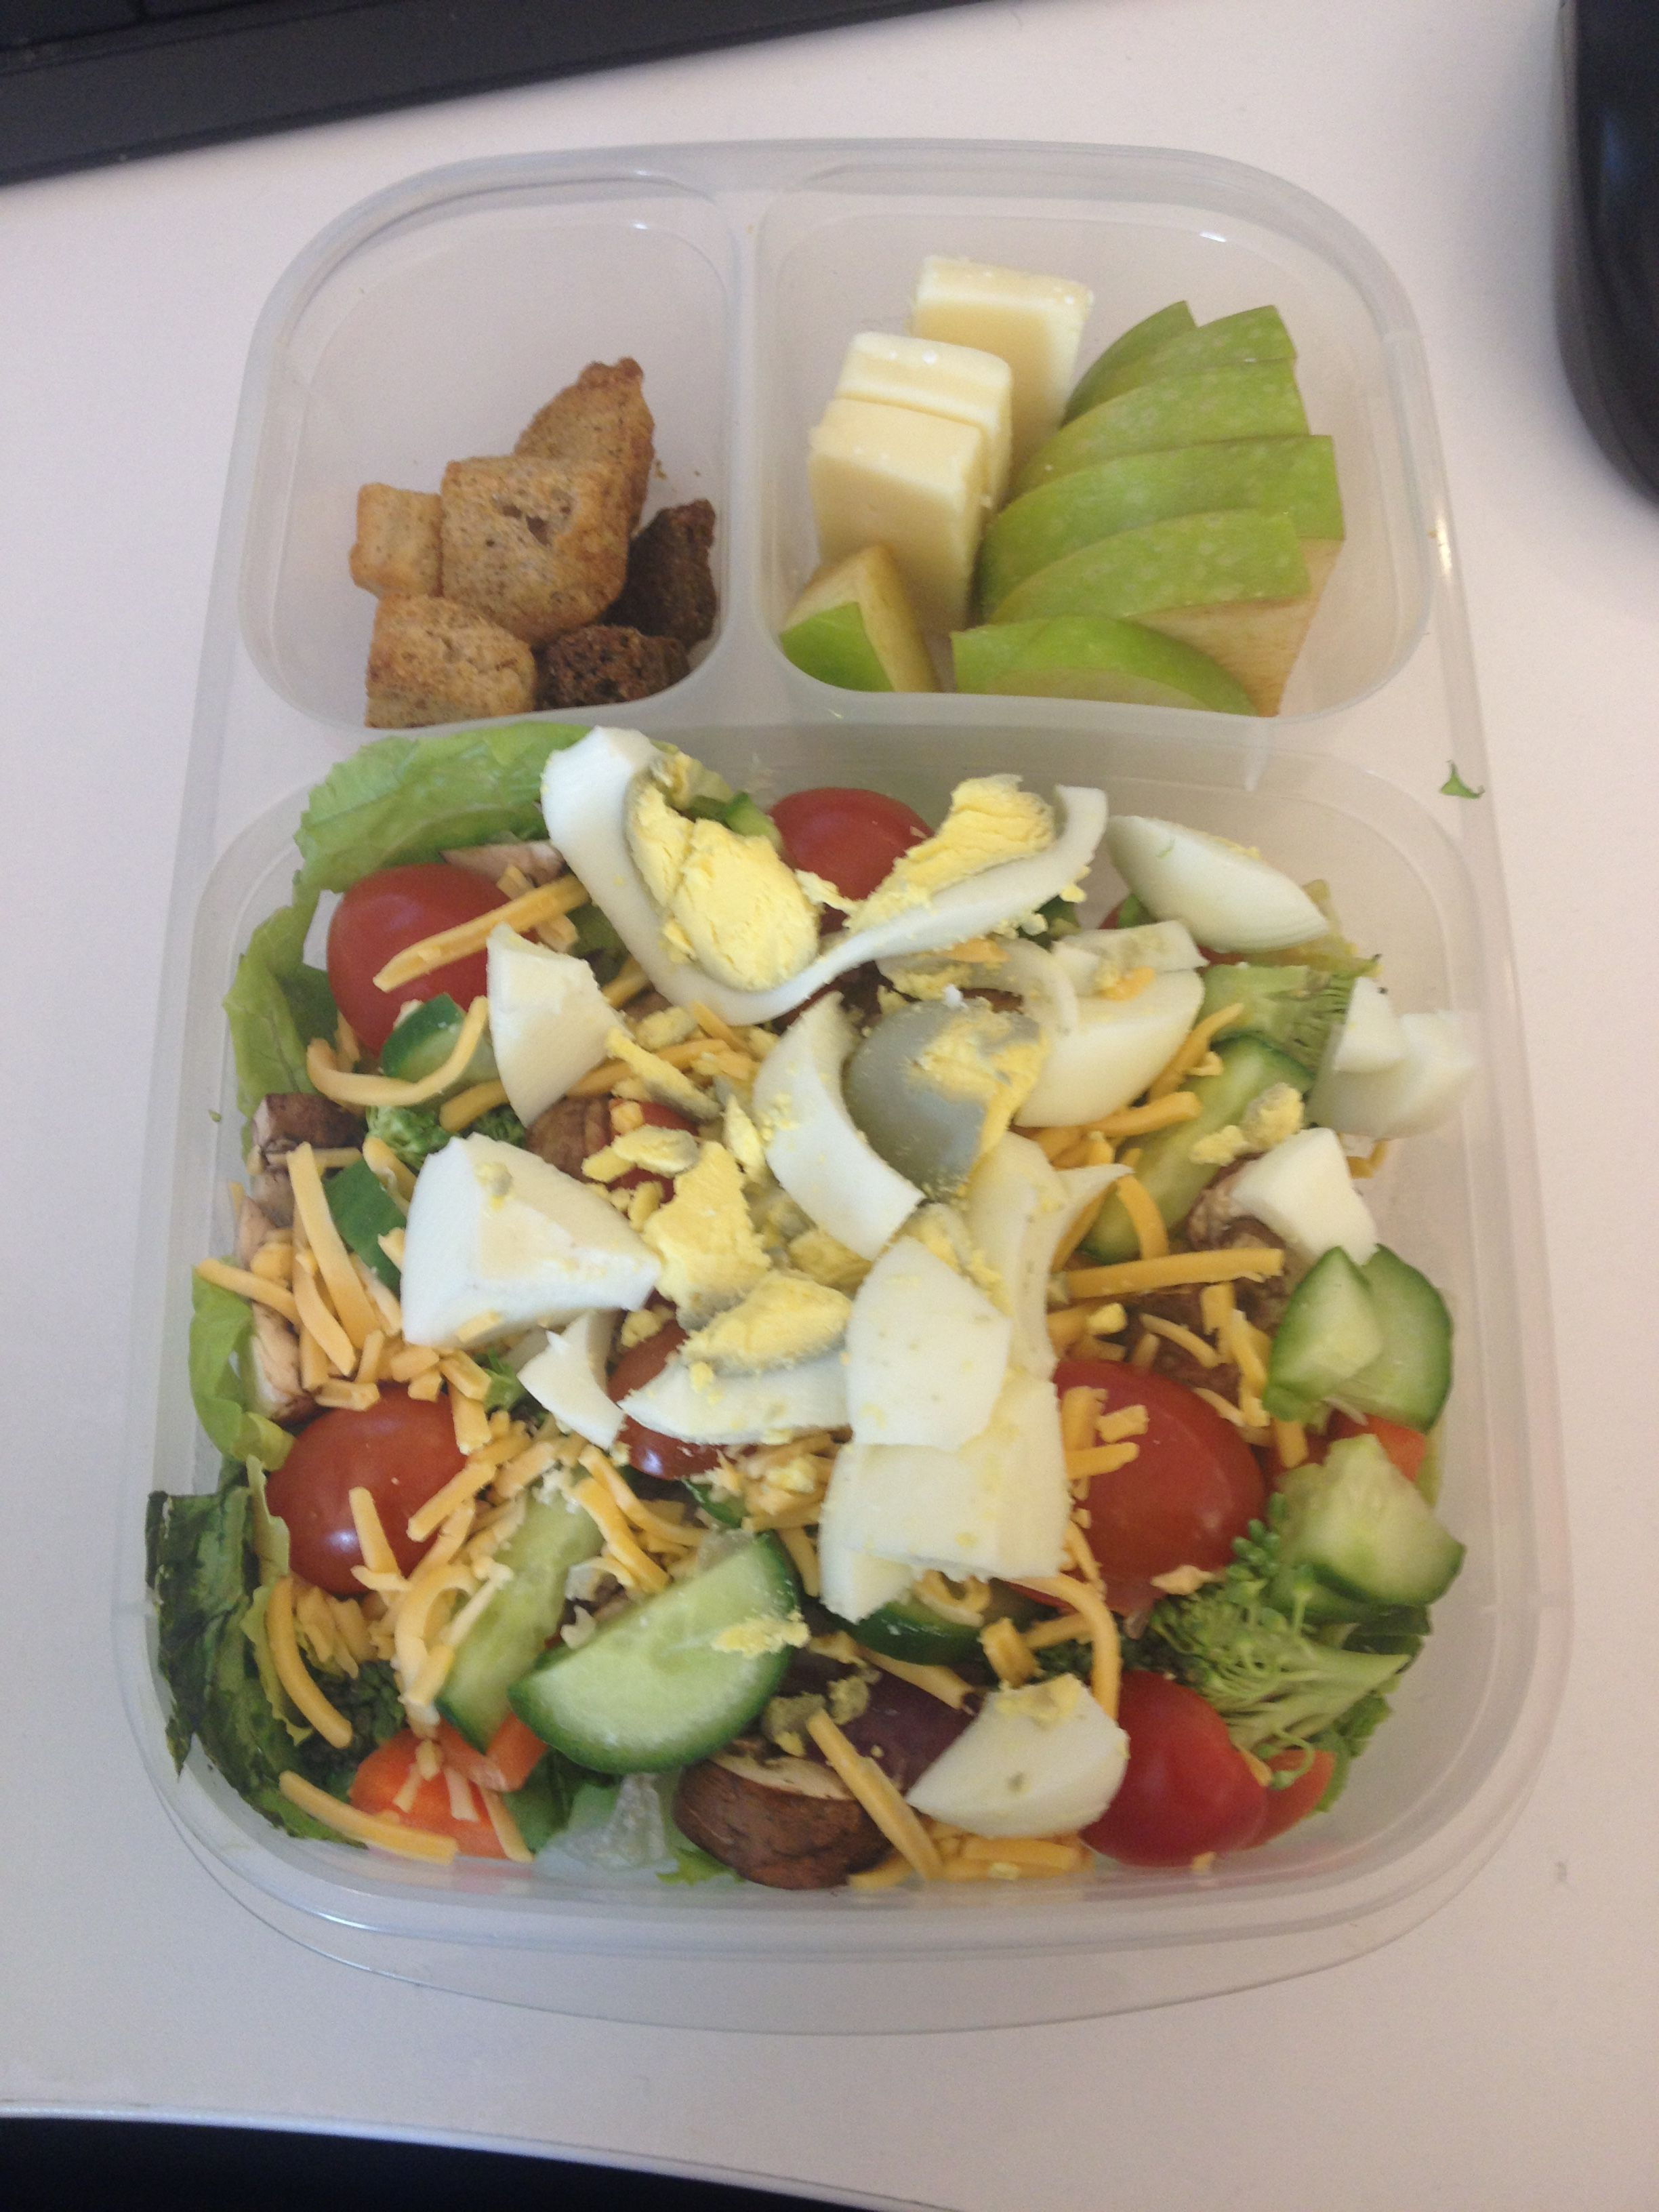 1/21/15- Getting back into making my lunches. Salad w/ romaine, cucumber, carrot... 1/21/15- Gettin